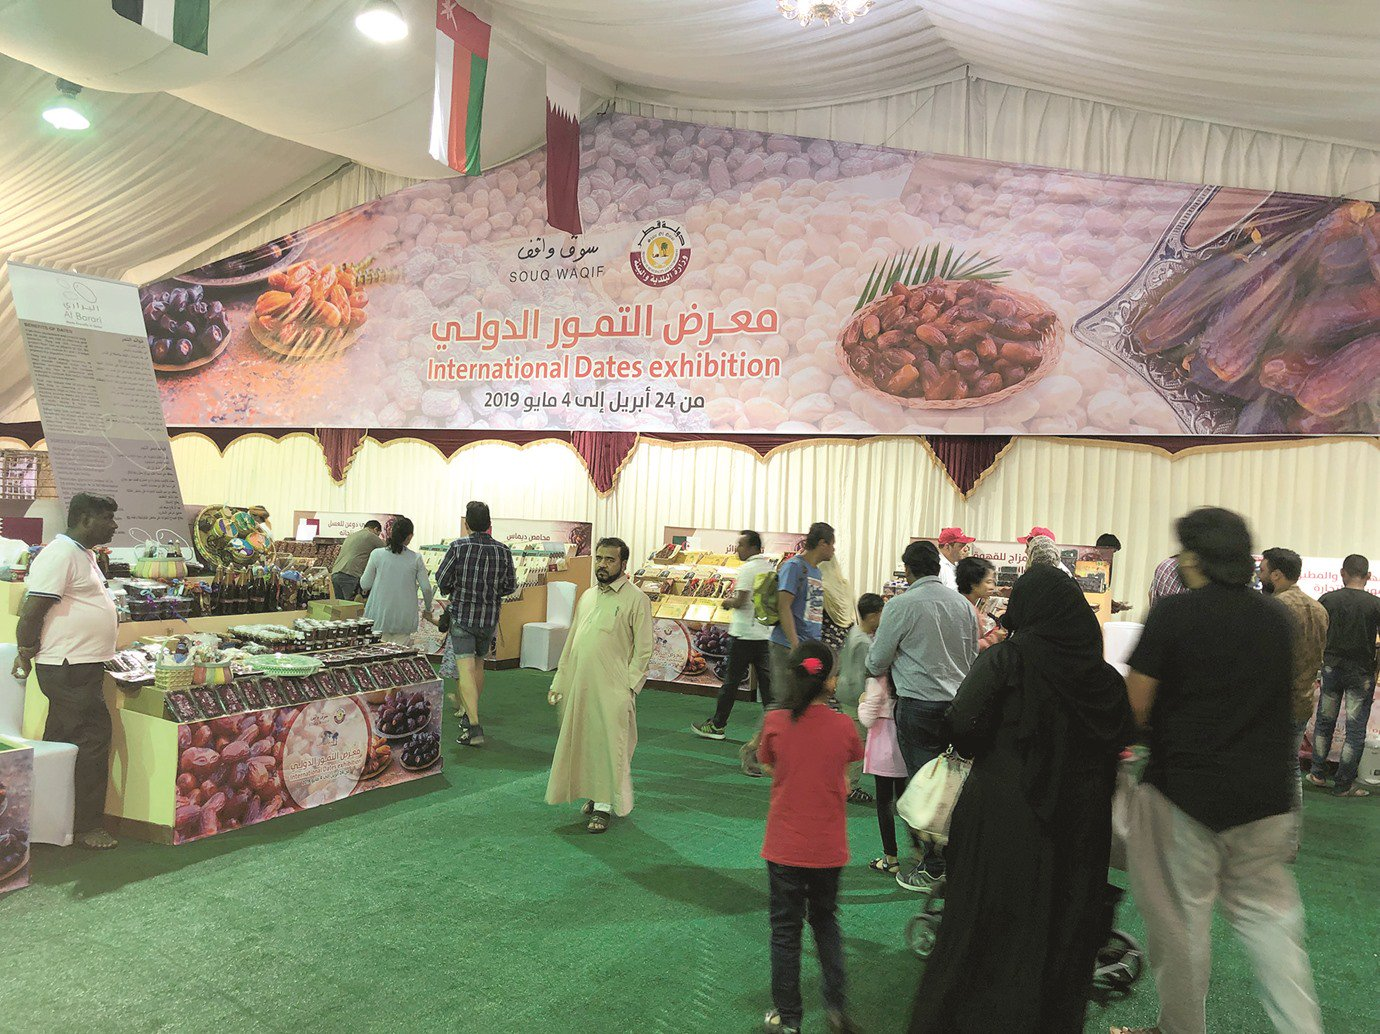 Over 17 tonnes of dates sold in four hours at exhibition